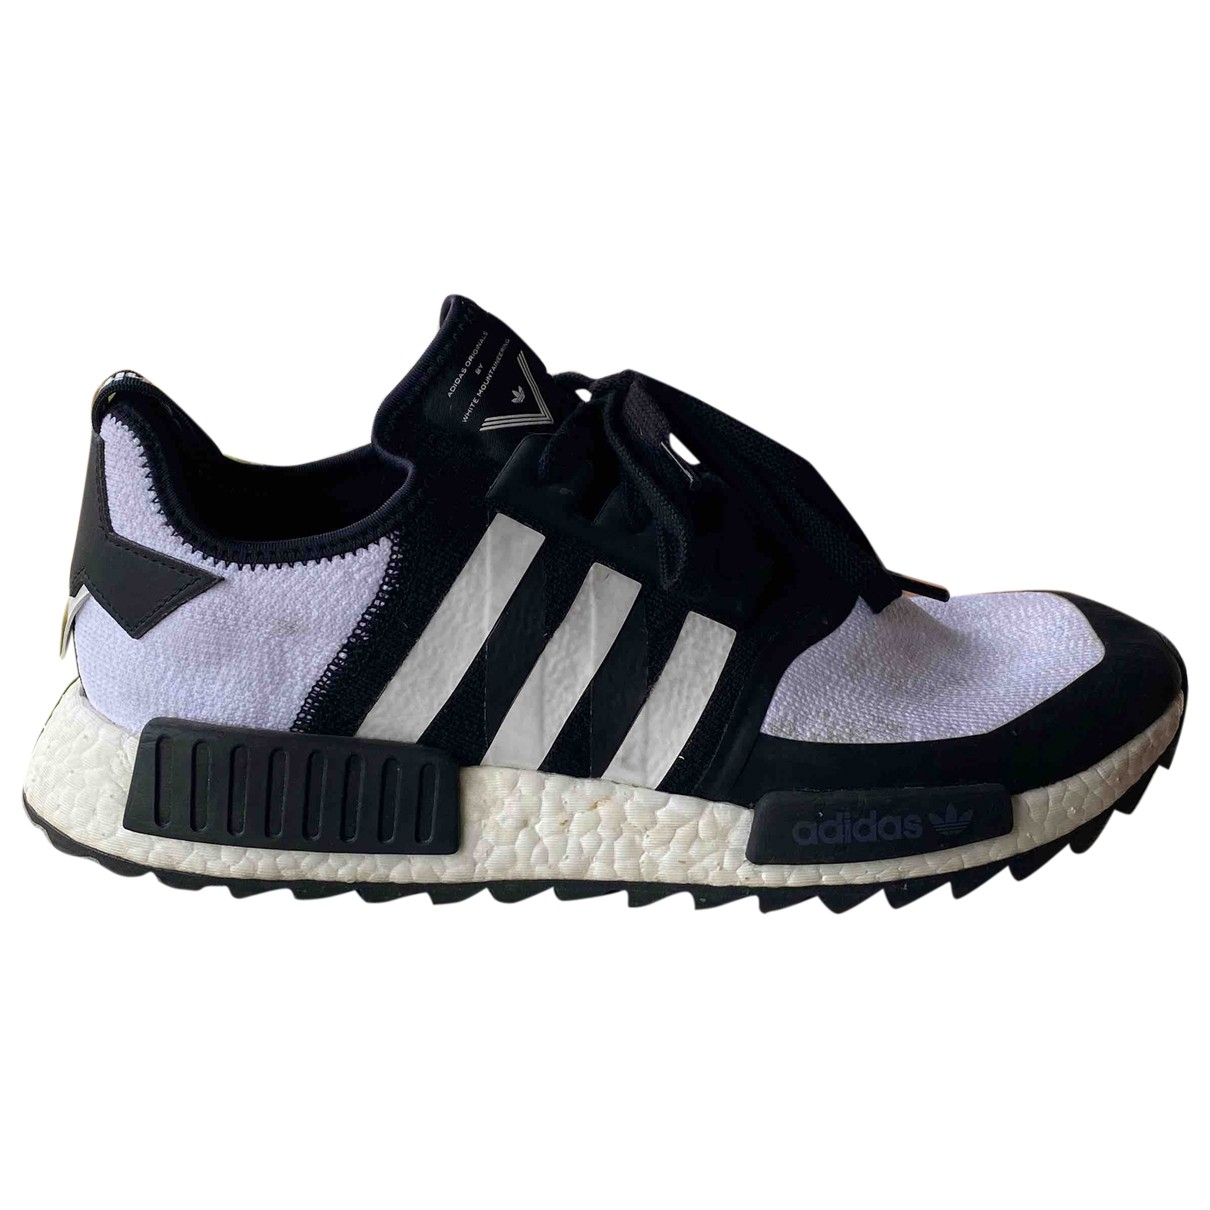 Adidas Nmd Sneakers in Leinen